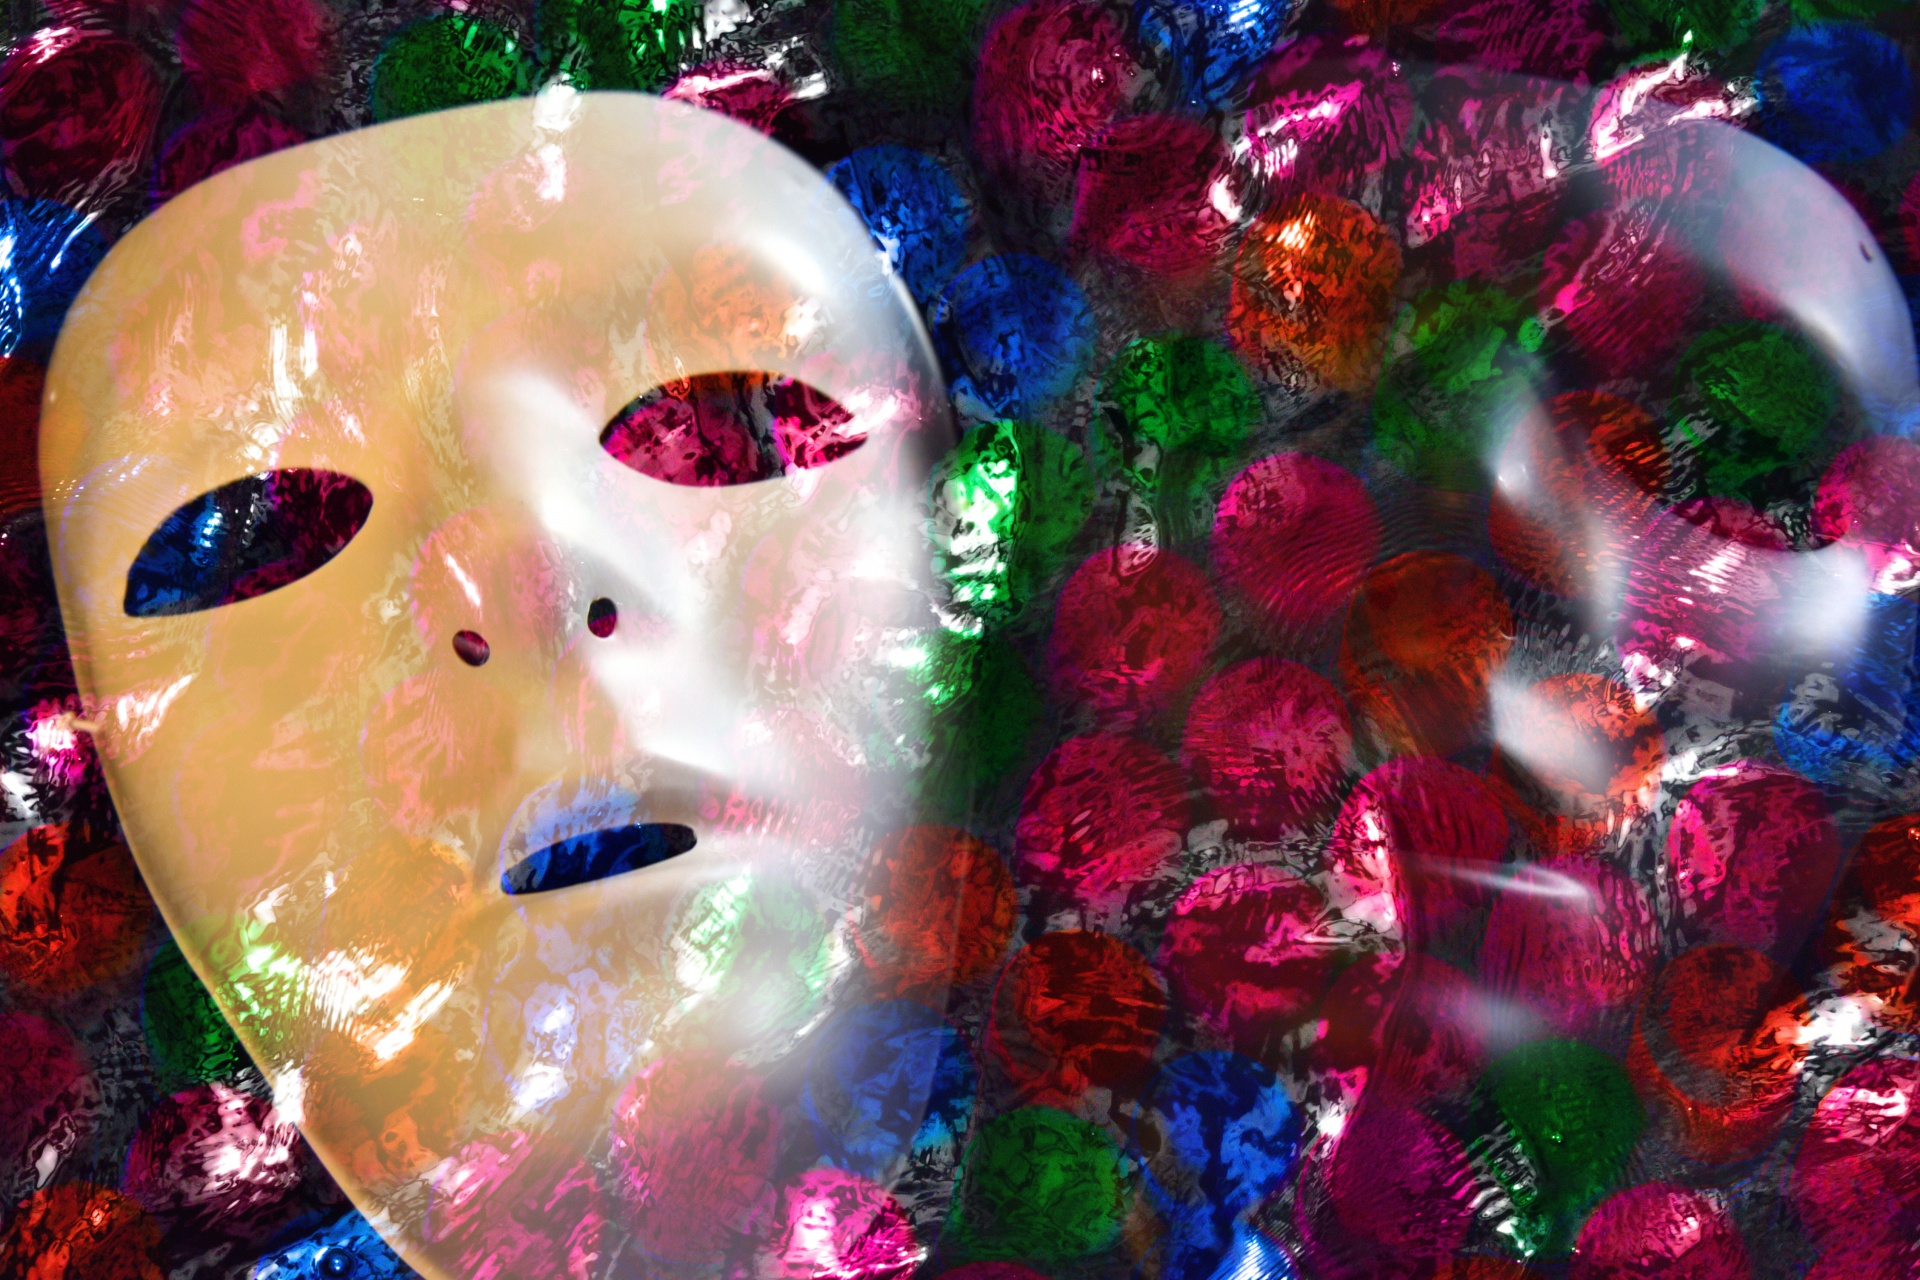 On the left, a blank drama mask over a colorful, polka dot background with the illusion of another faded mask on the right.